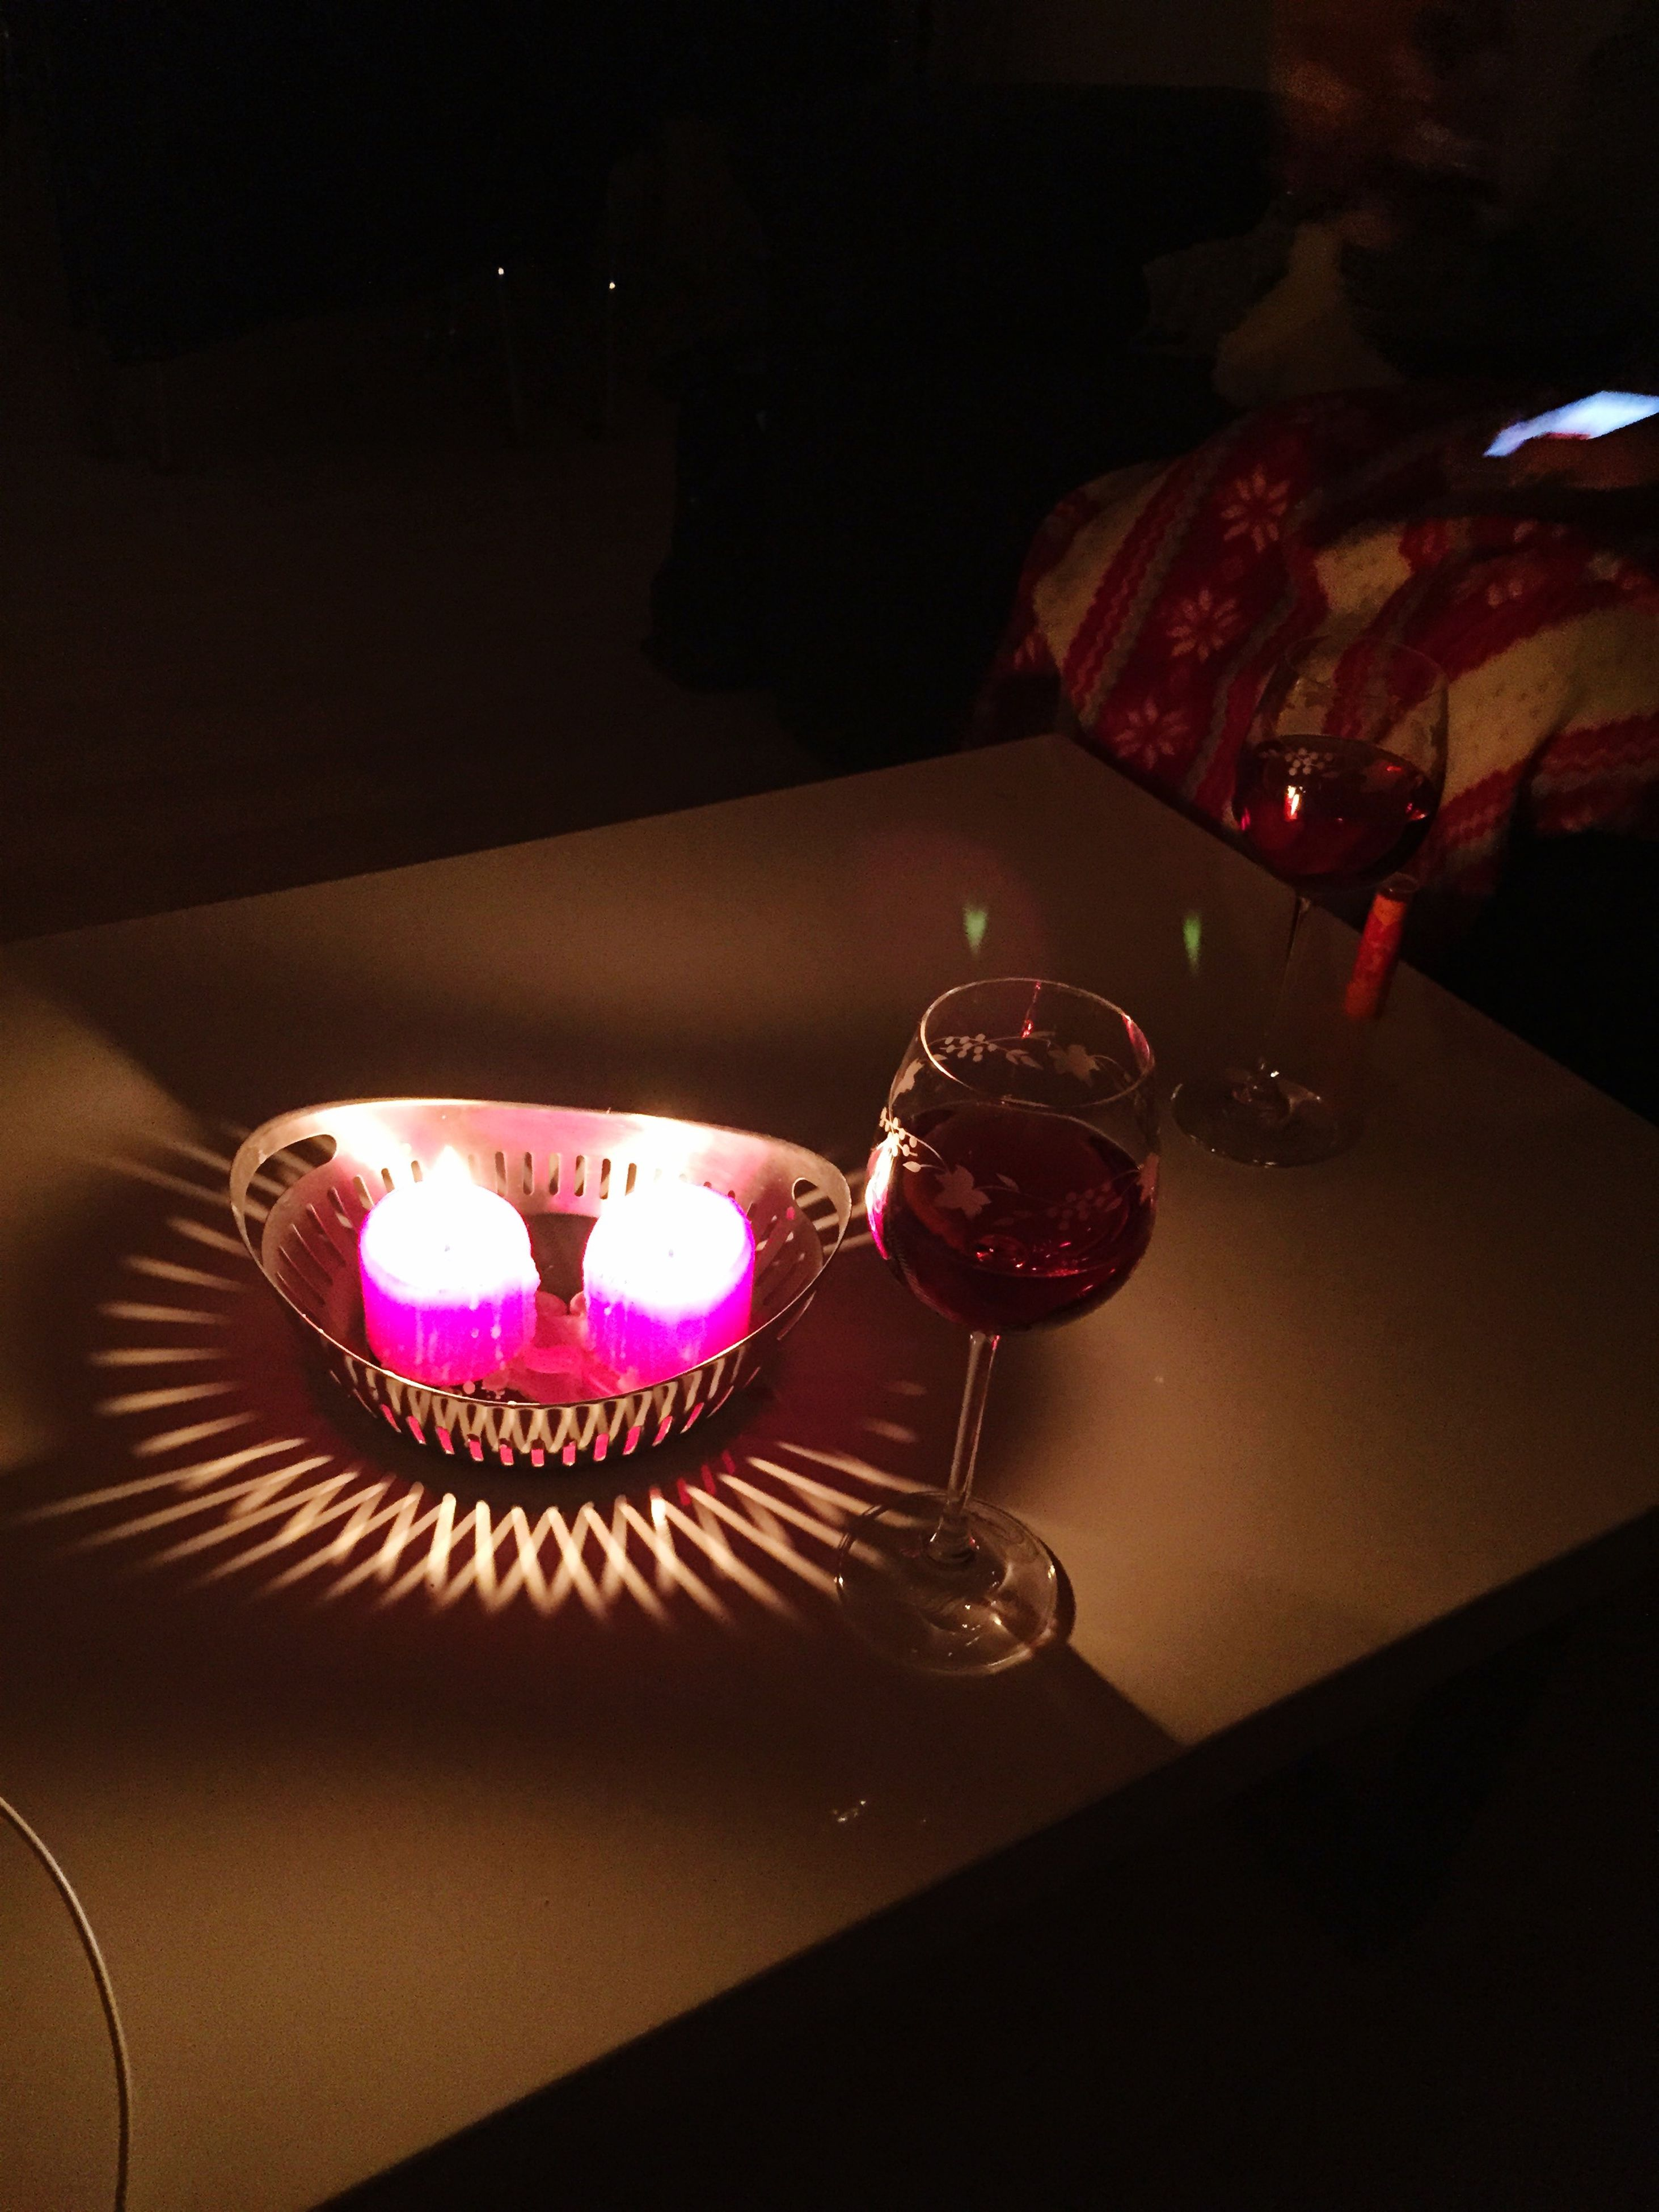 indoors, illuminated, table, night, still life, decoration, close-up, home interior, high angle view, no people, candle, glowing, lighting equipment, light - natural phenomenon, glass - material, reflection, celebration, focus on foreground, red, dark